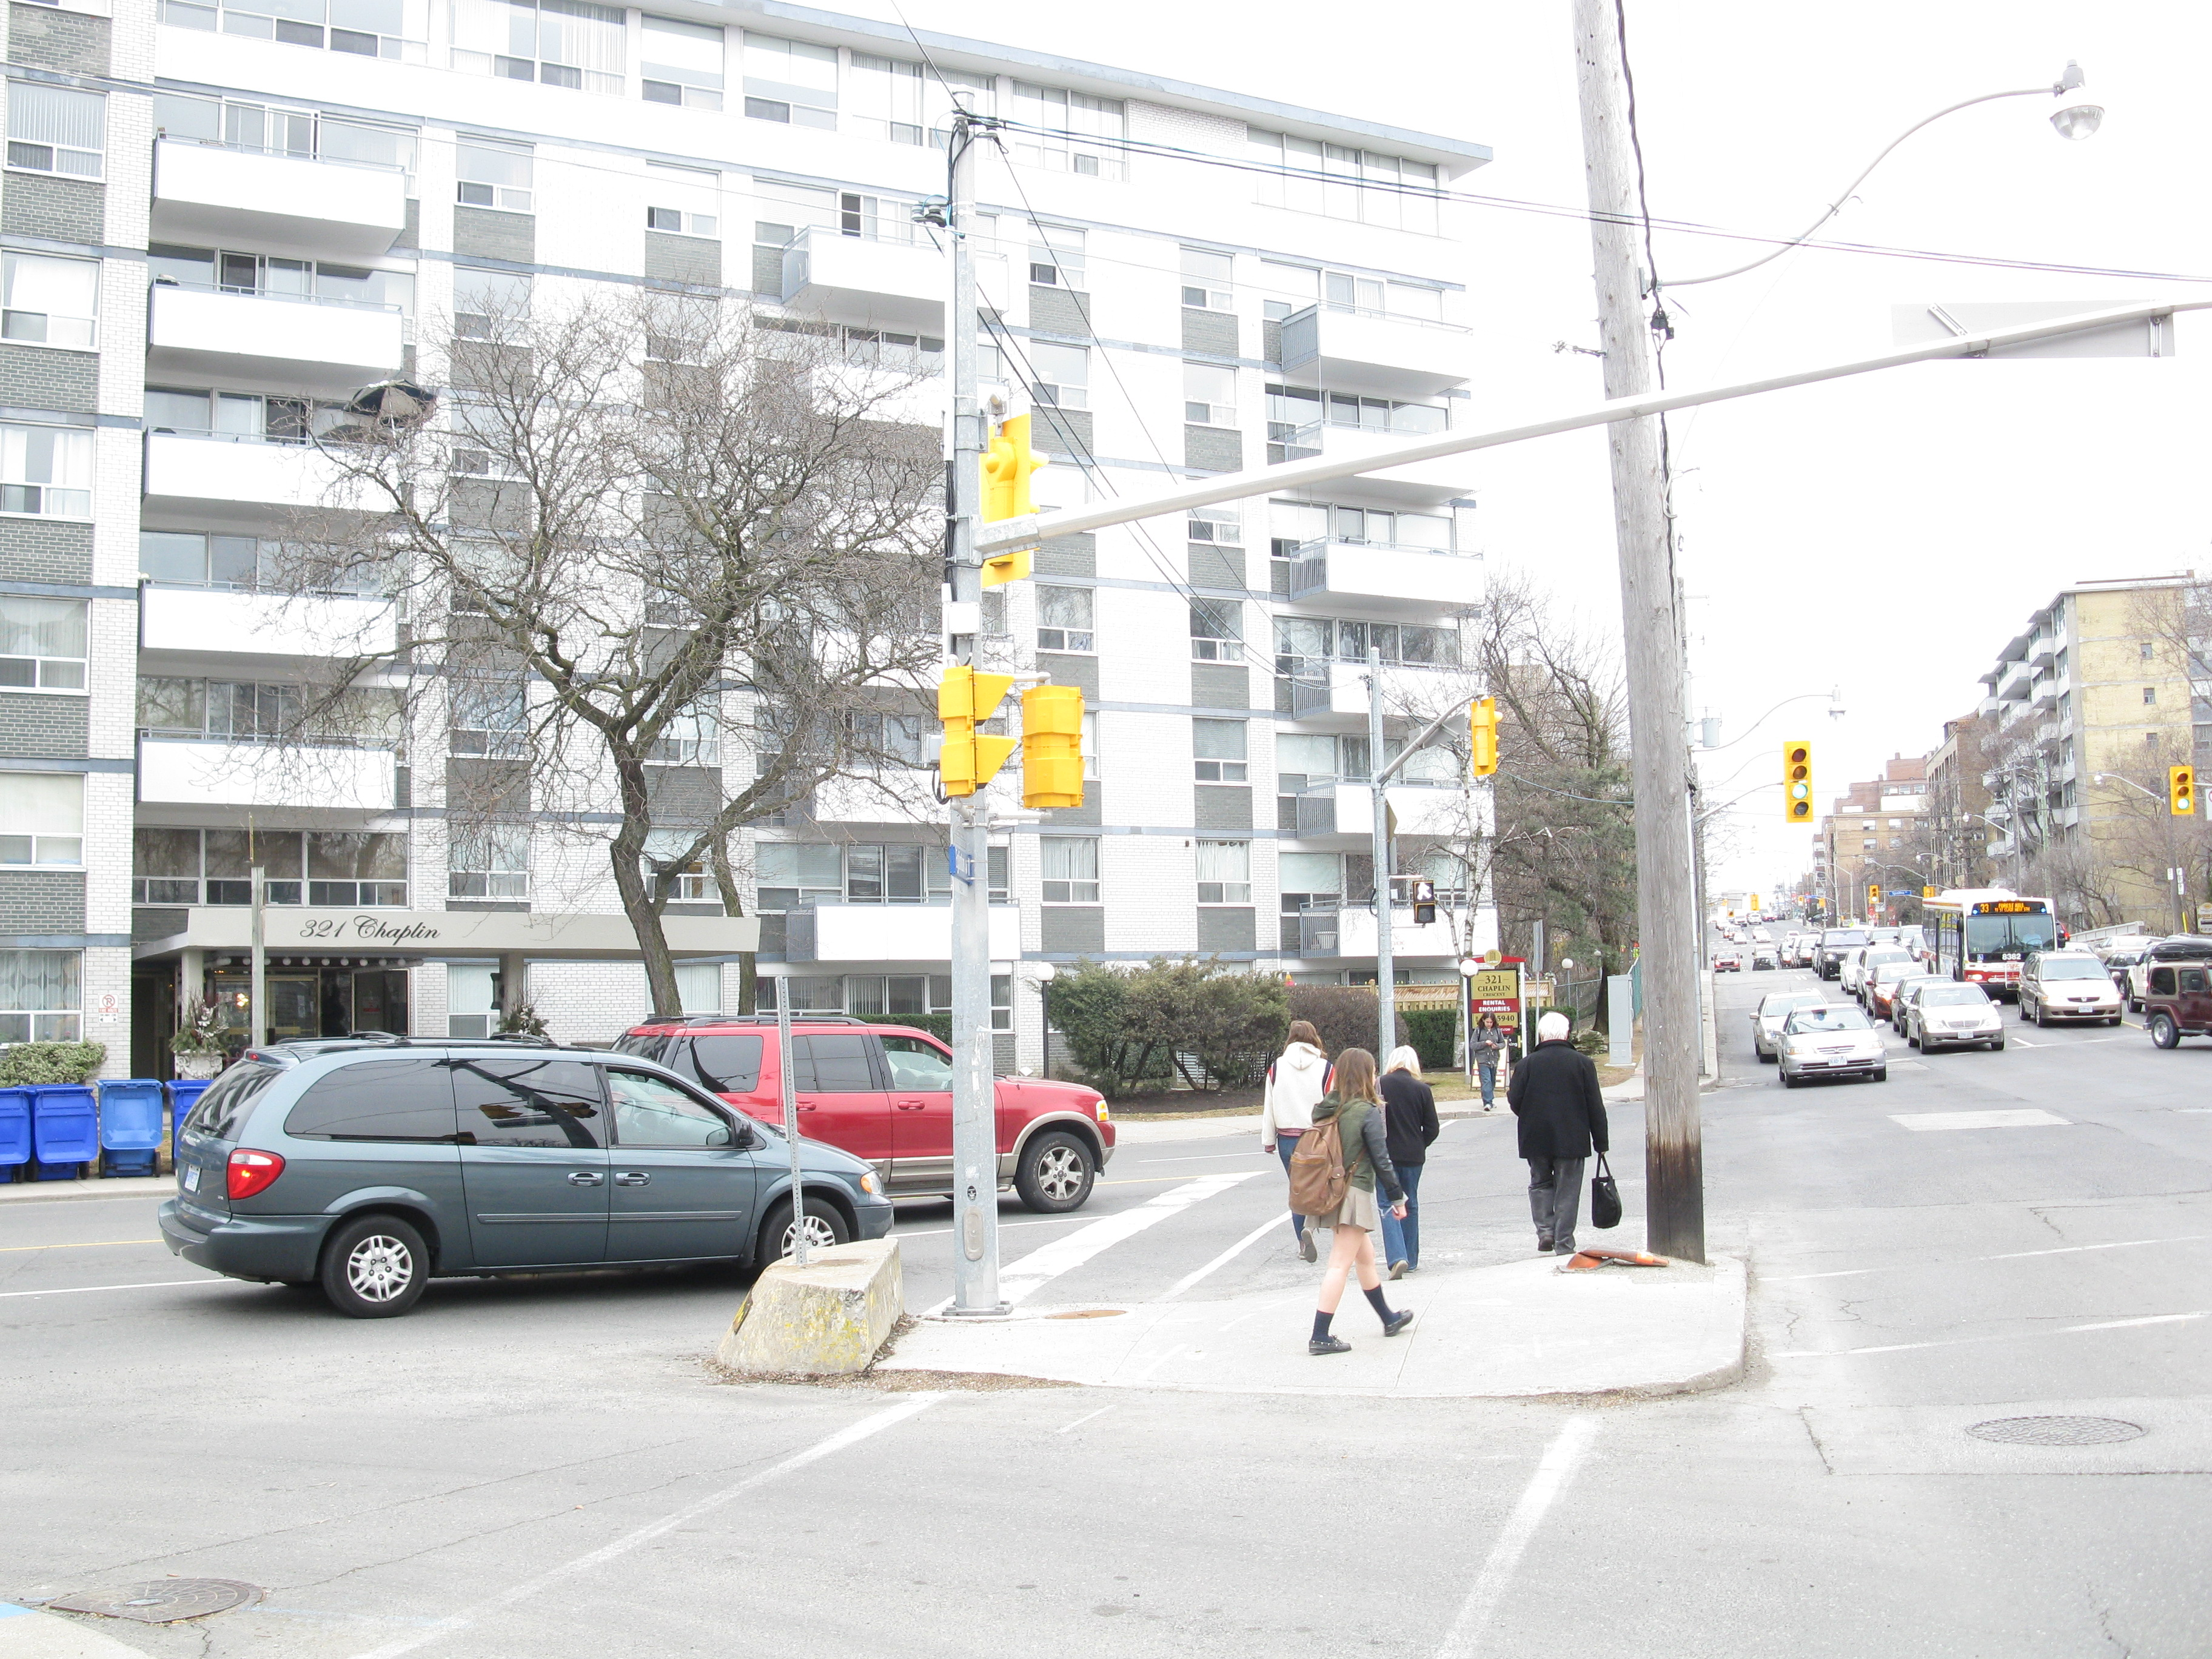 Intersection of chaplin and eglinton, 2013 04 09 -an photo